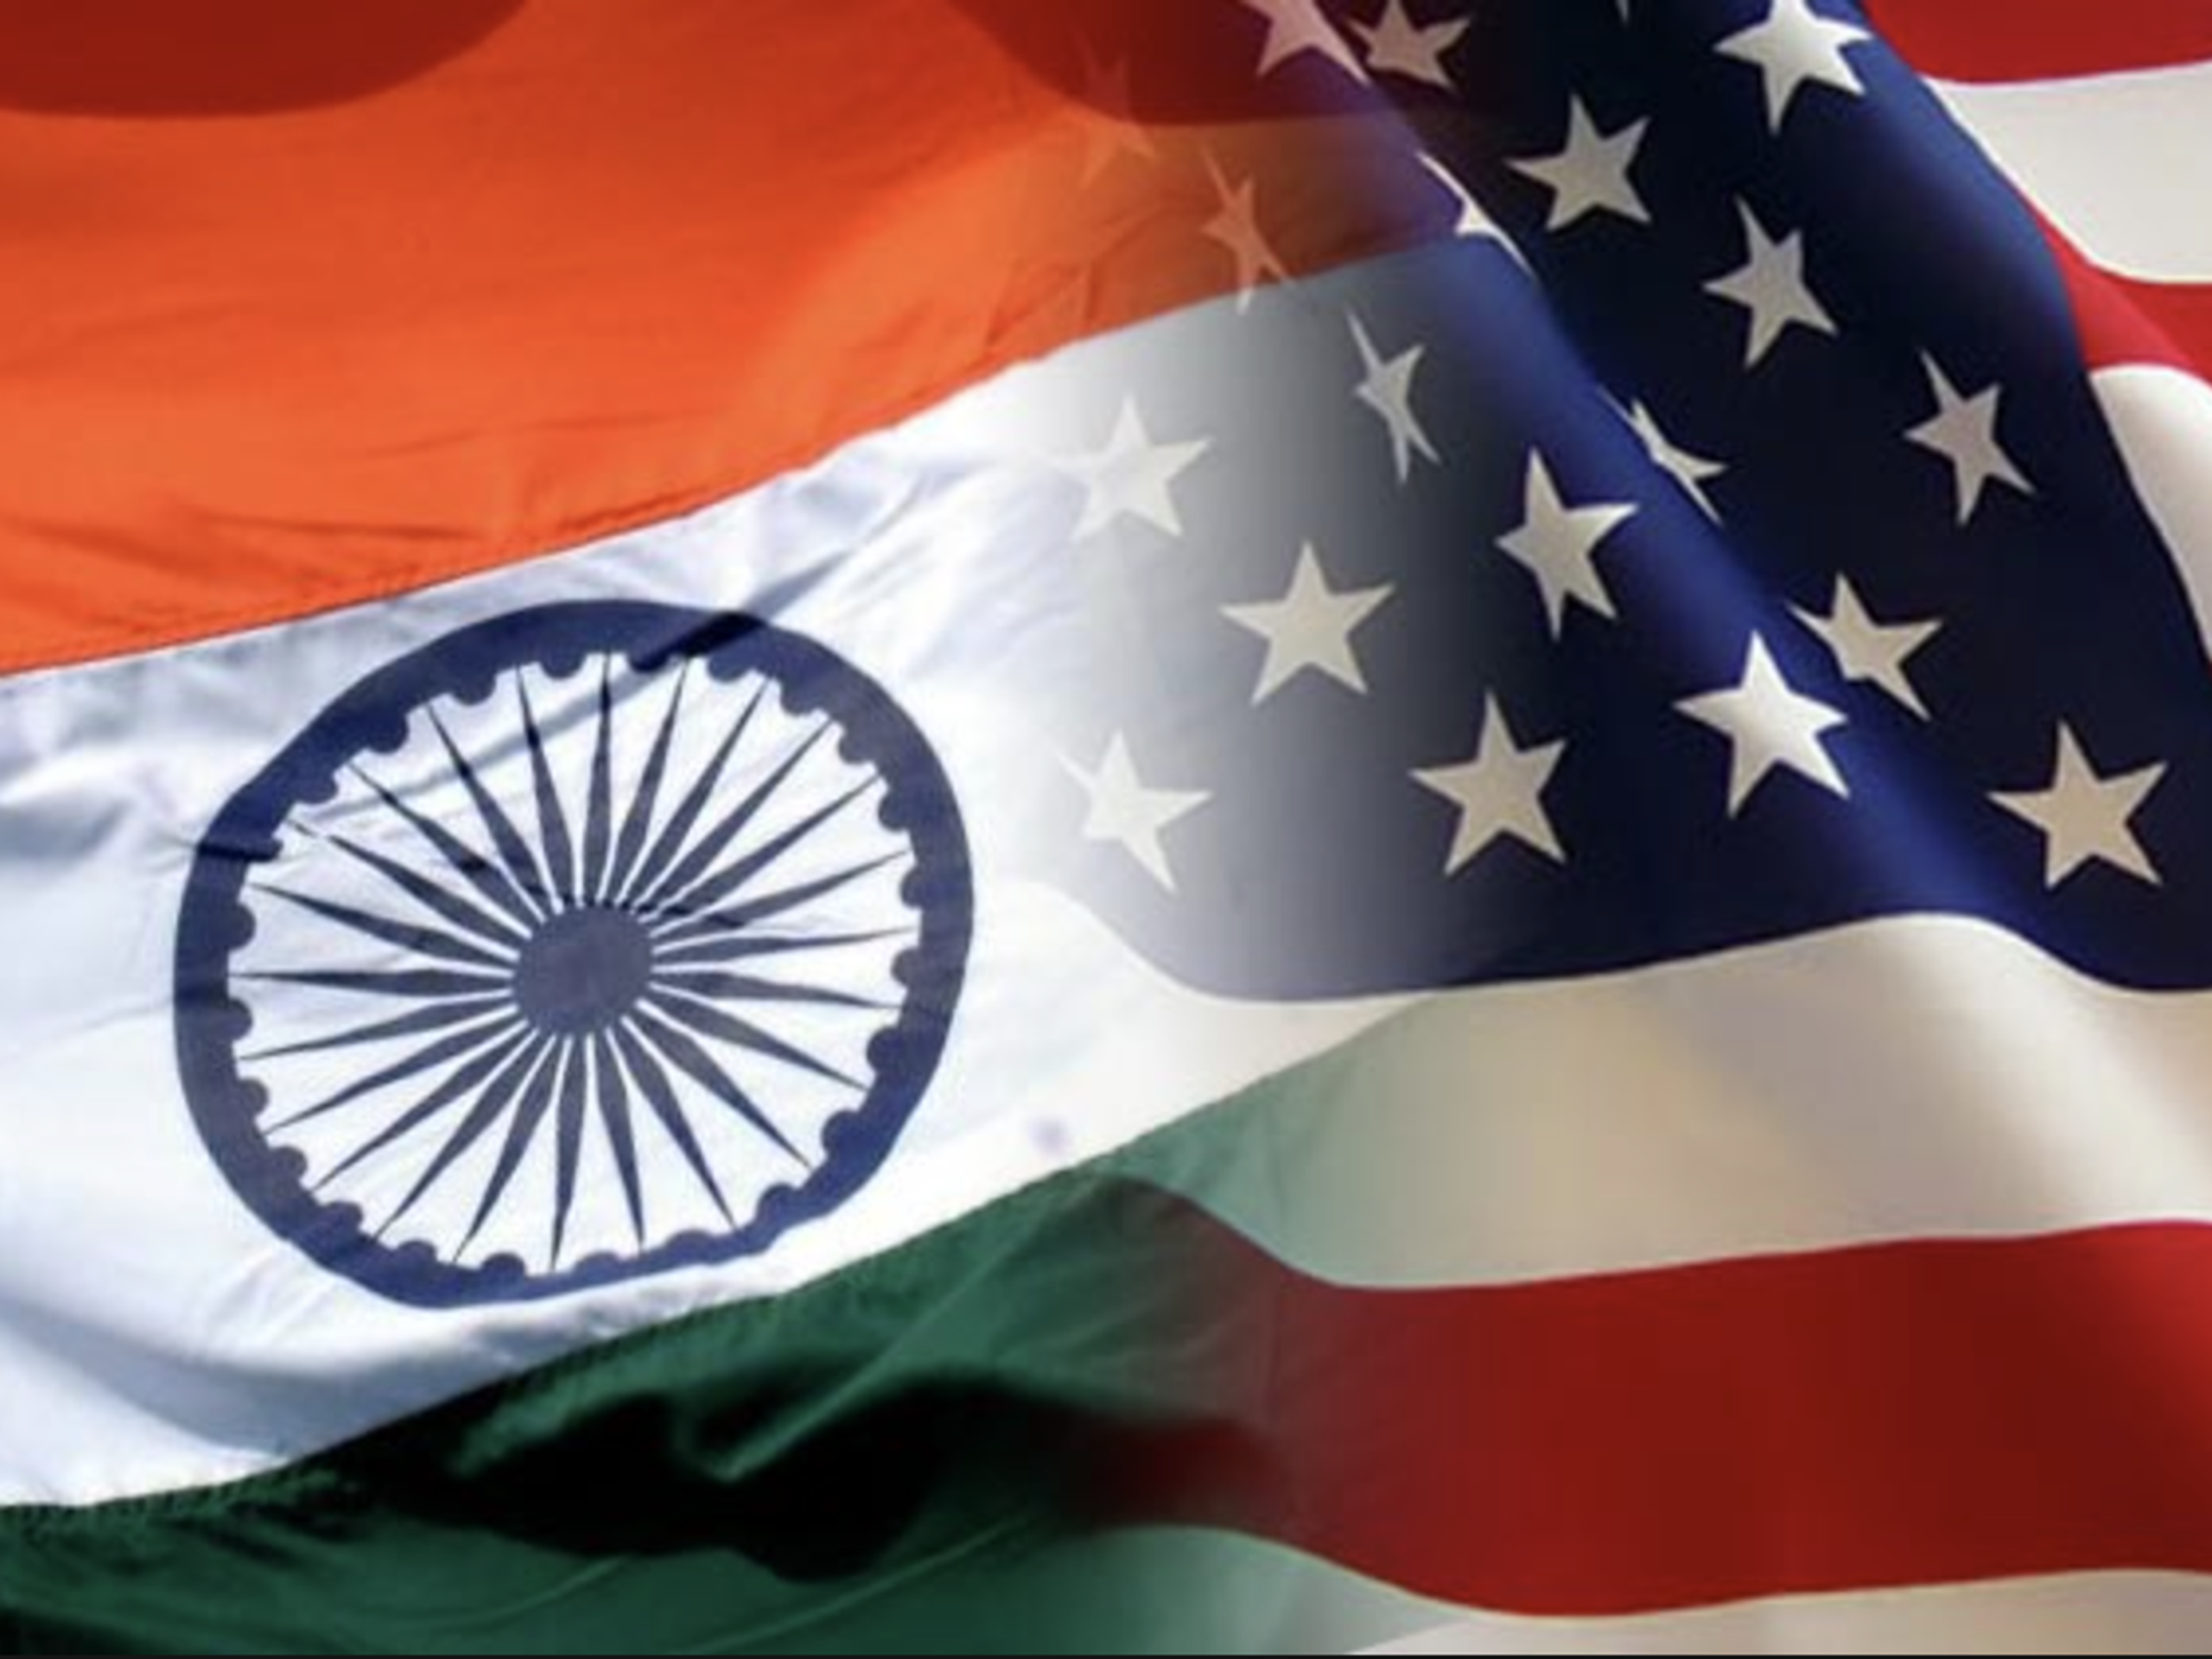 Indo-American global health diplomacy can influence risk management outcomes